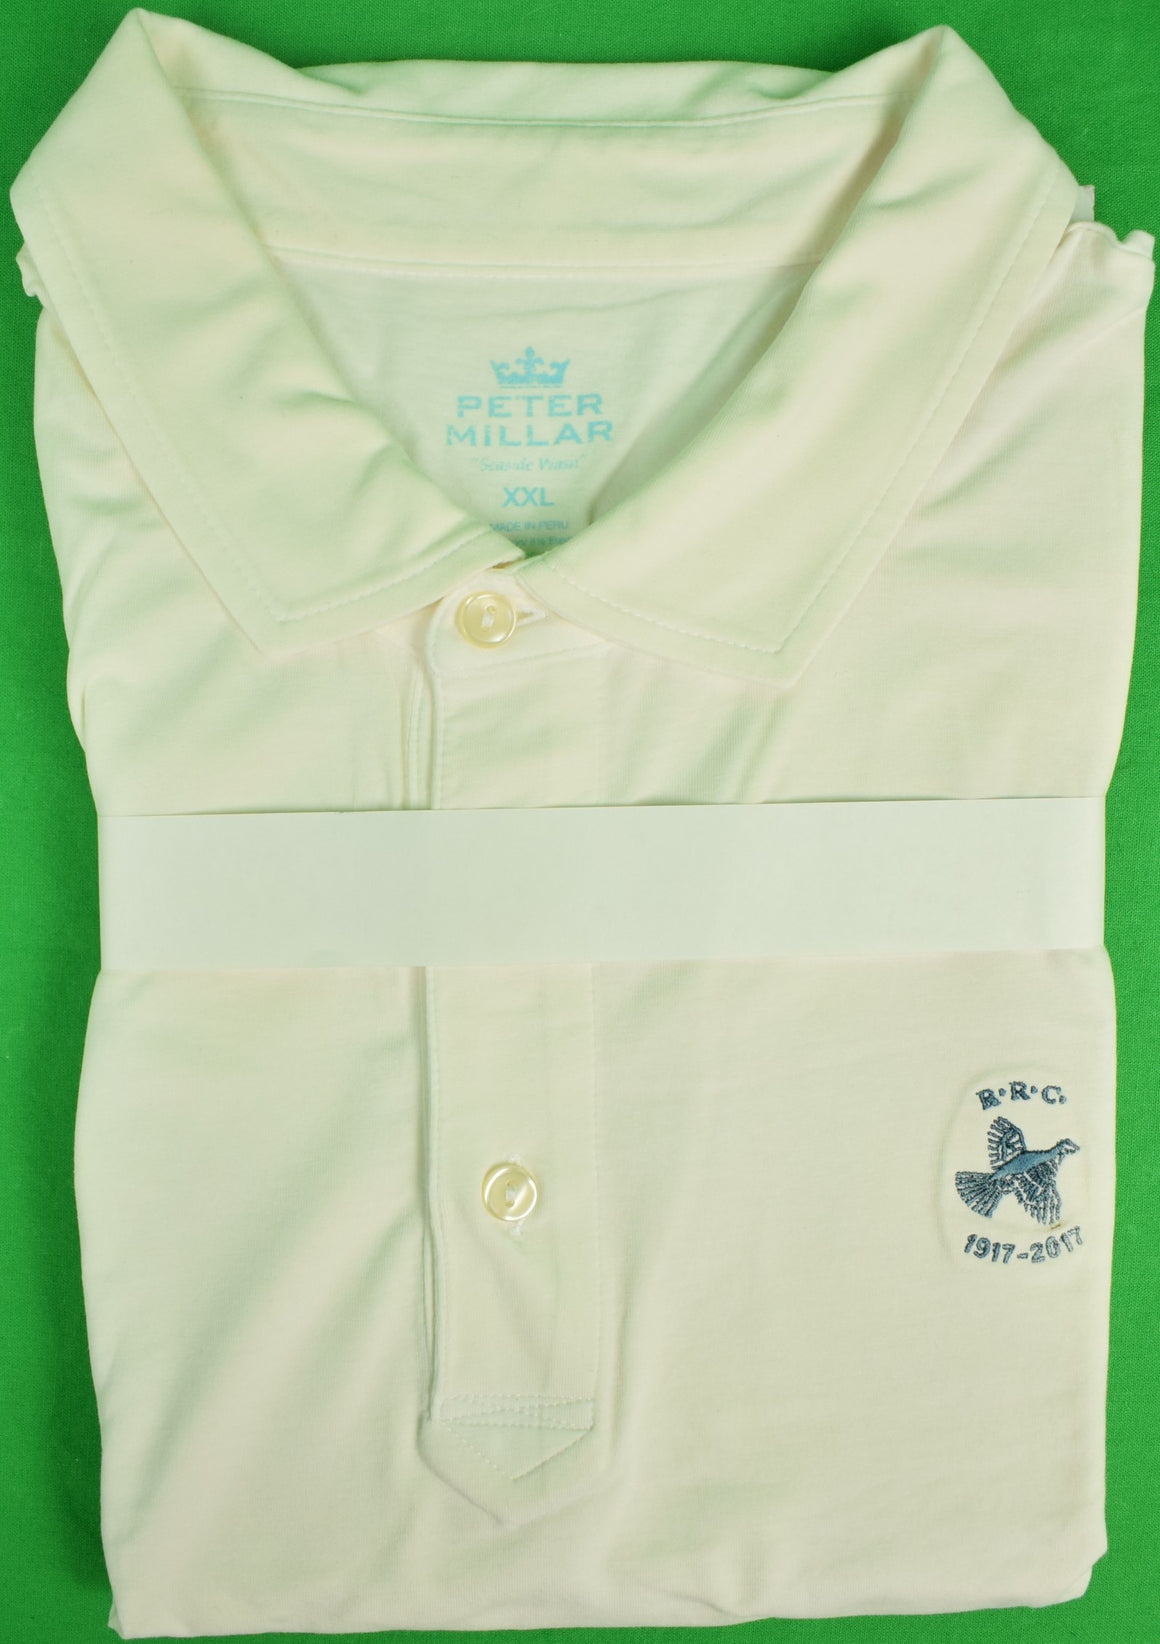 Peter Millar White S/S Polo Shirt w/ Rolling Rock Club Logo Sz: XXL